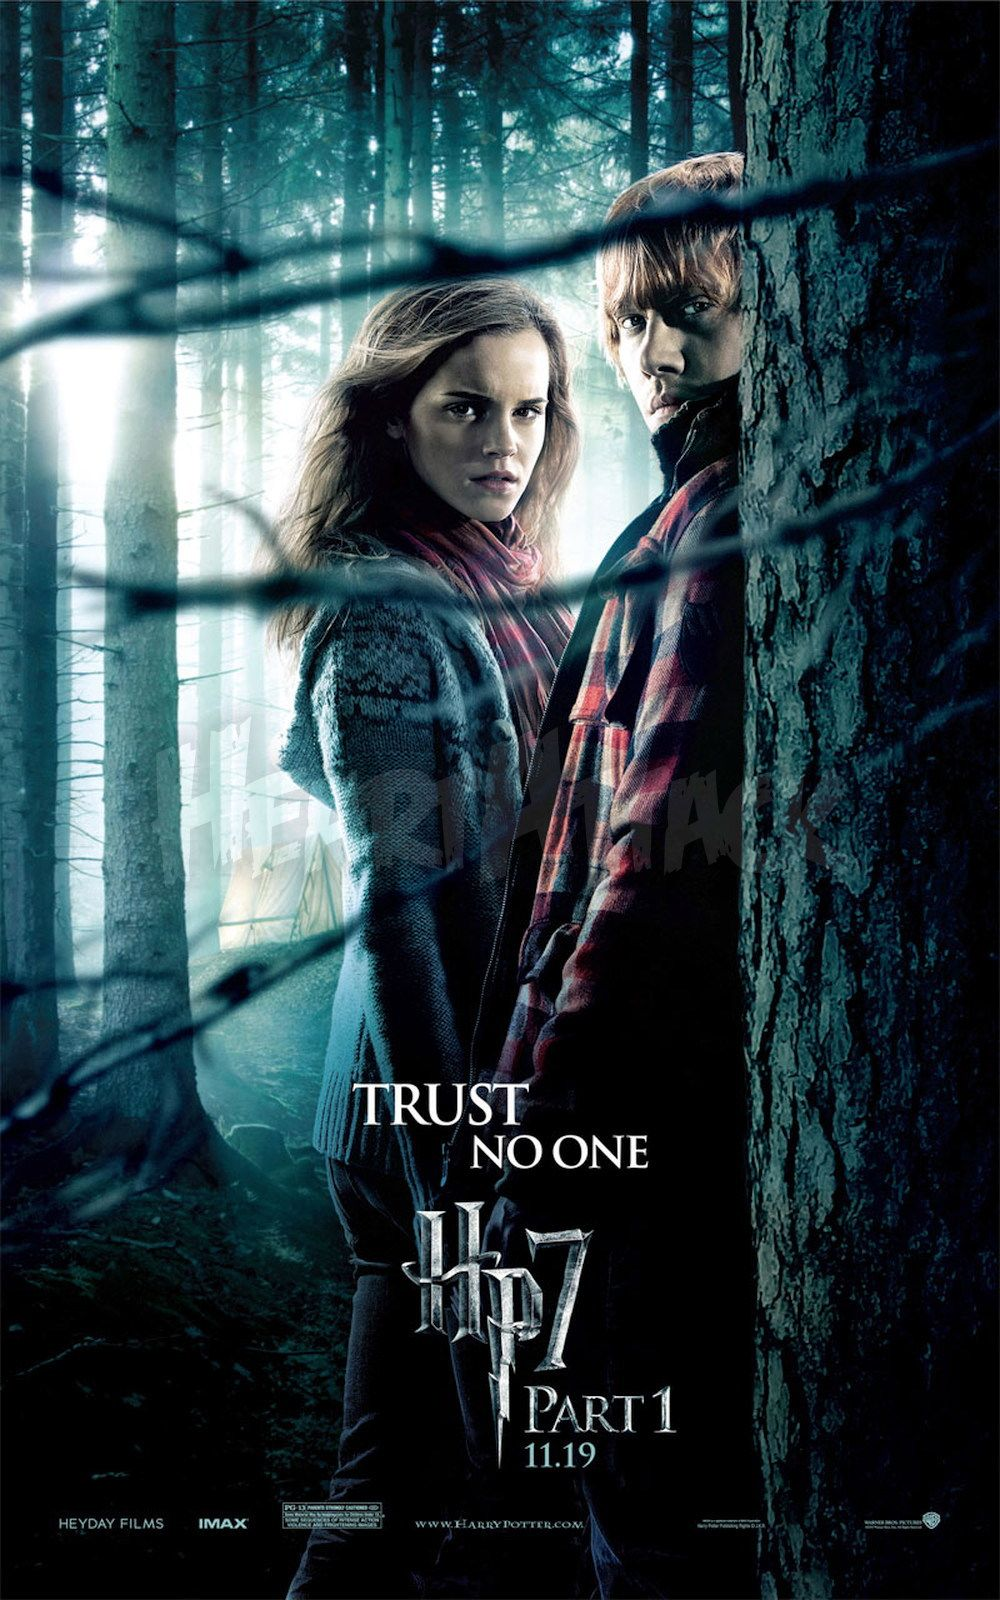 'Deathly Hallows: Part 1' Hermione & Ron poster